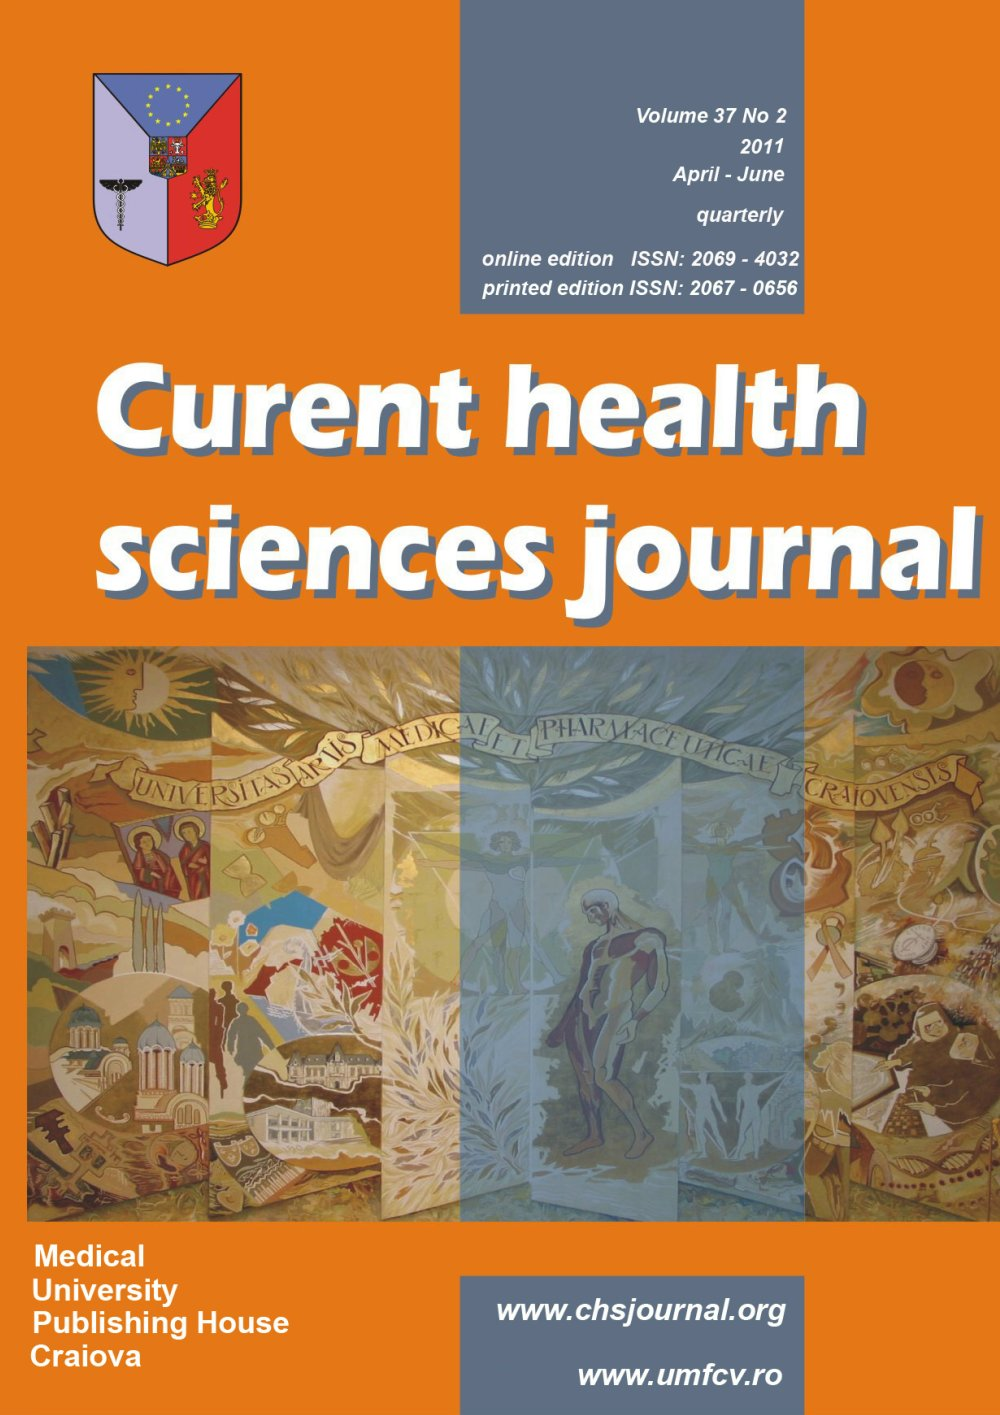 Current Health Sciences Journal, vol. 37 no. 2, 2011